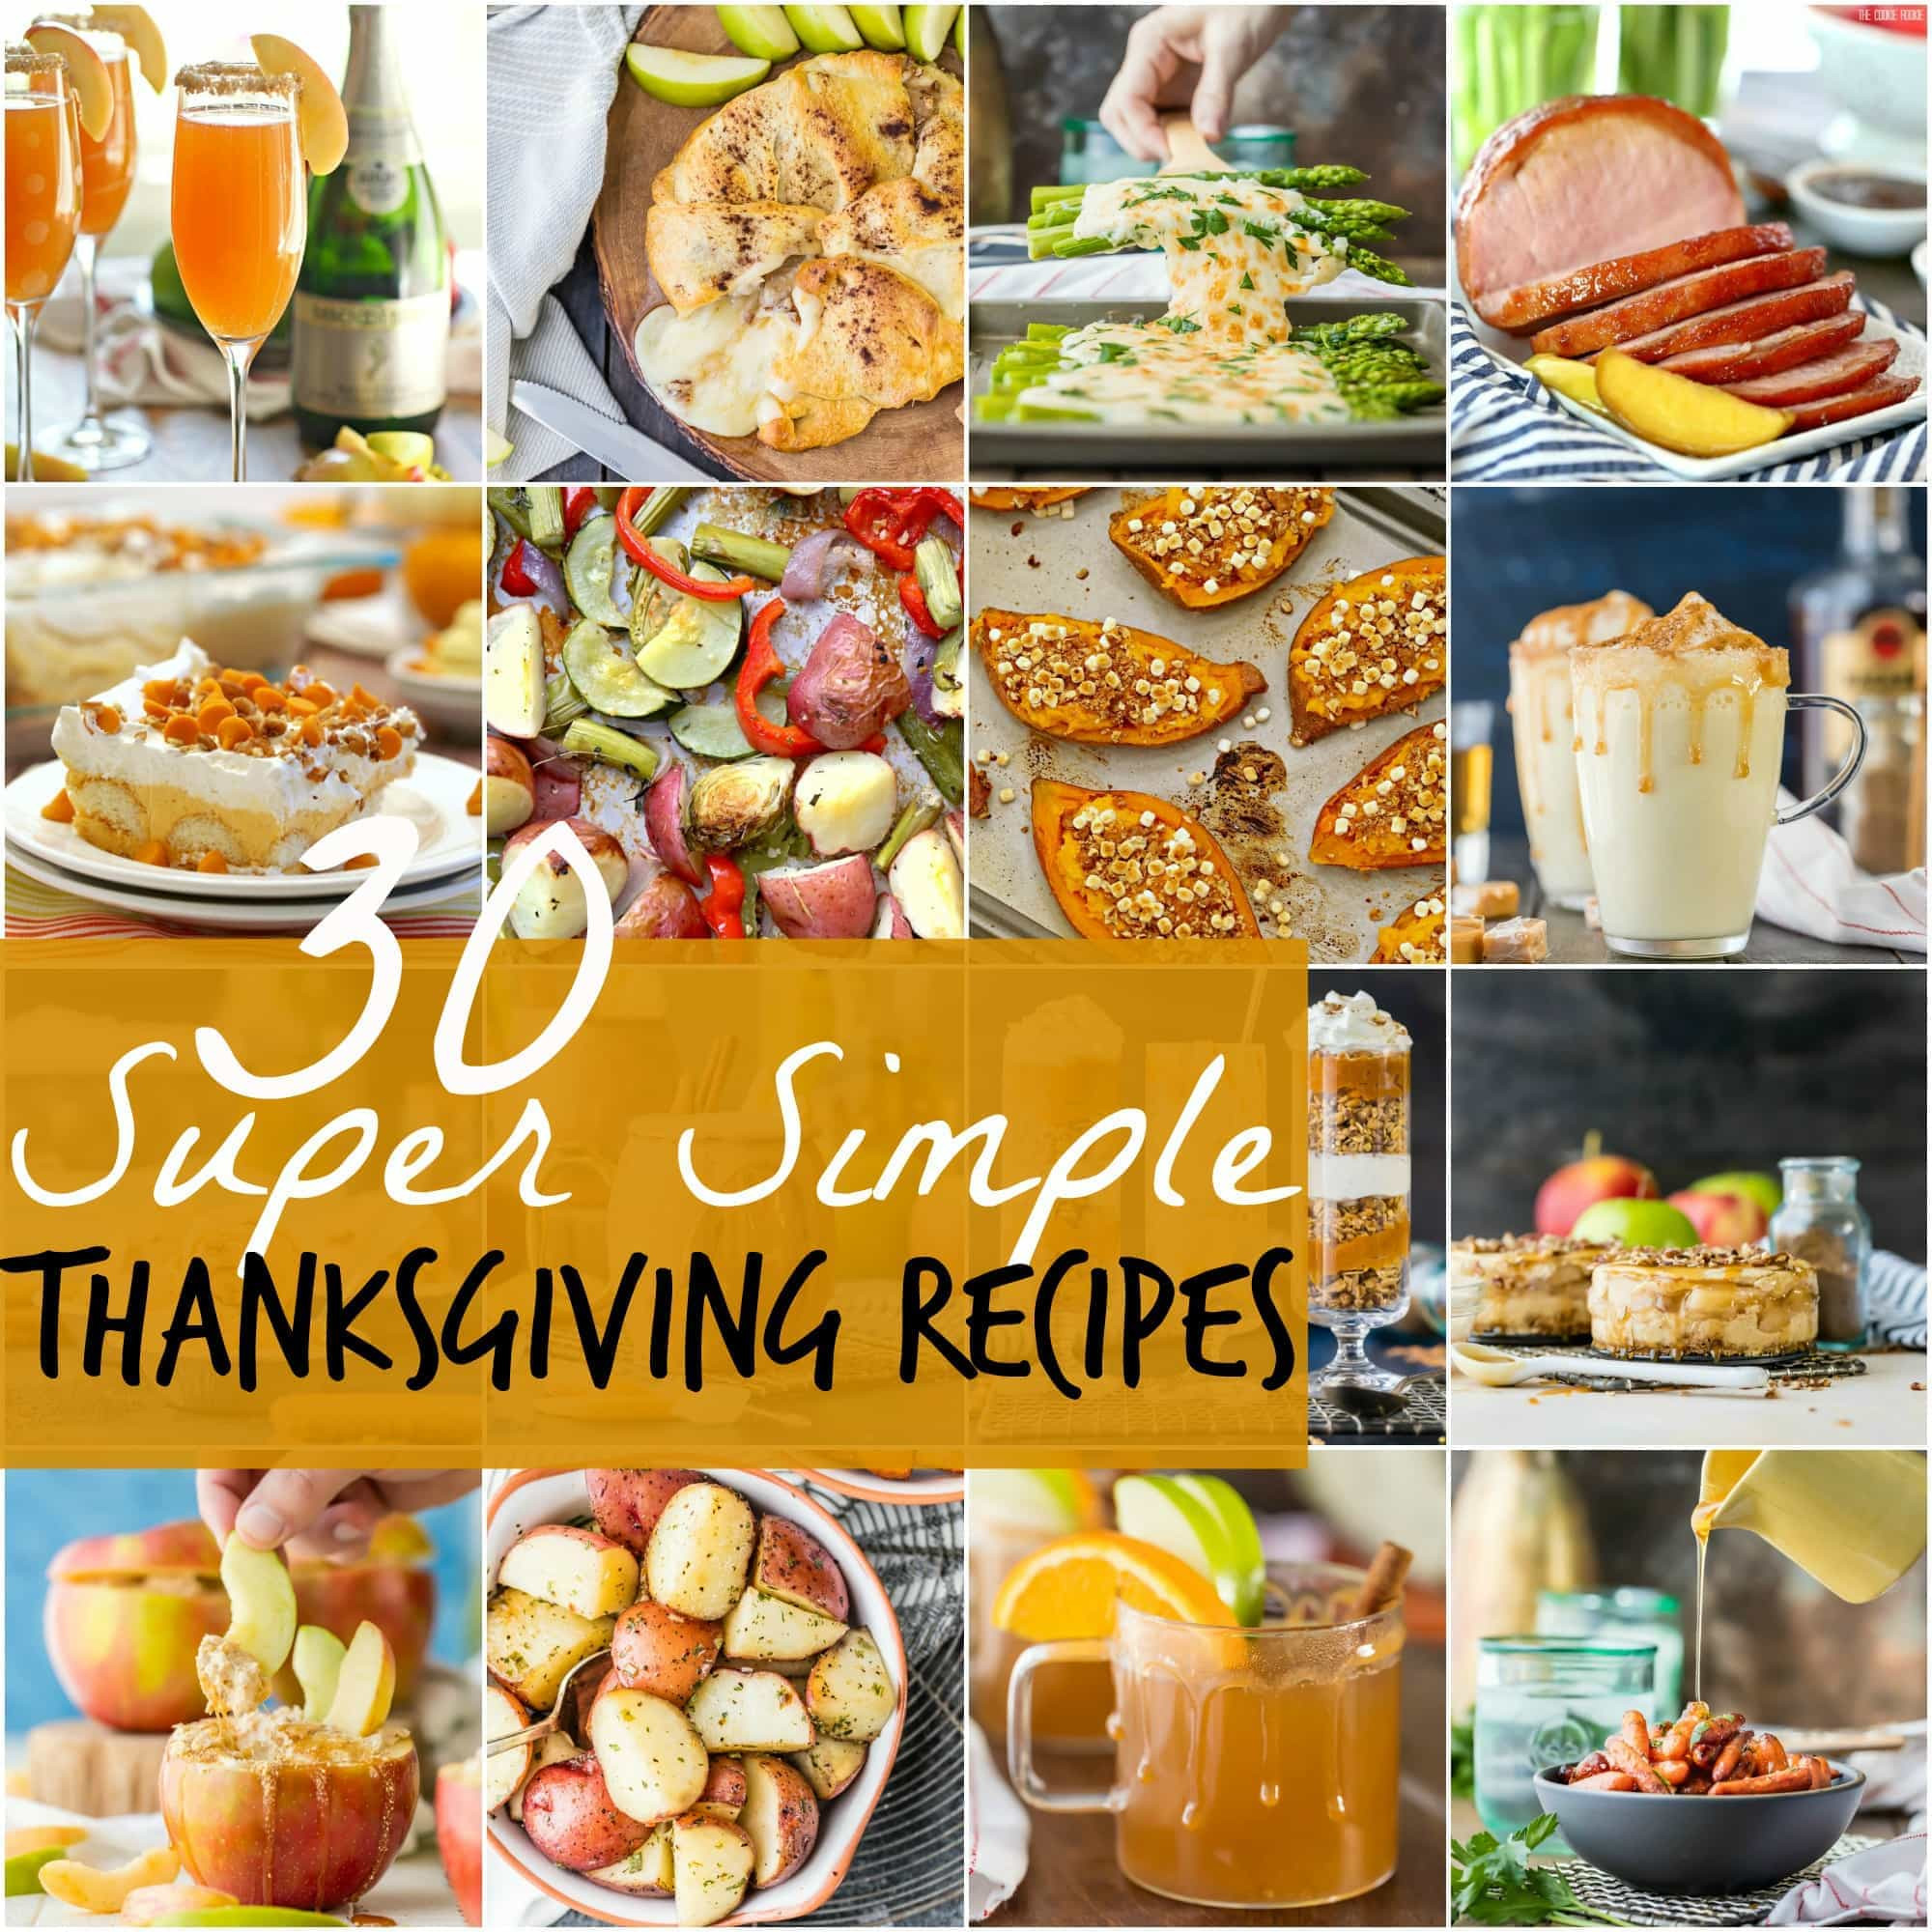 Easy Thanksgiving Turkey Recipes  30 SUPER SIMPLE Thanksgiving Recipes